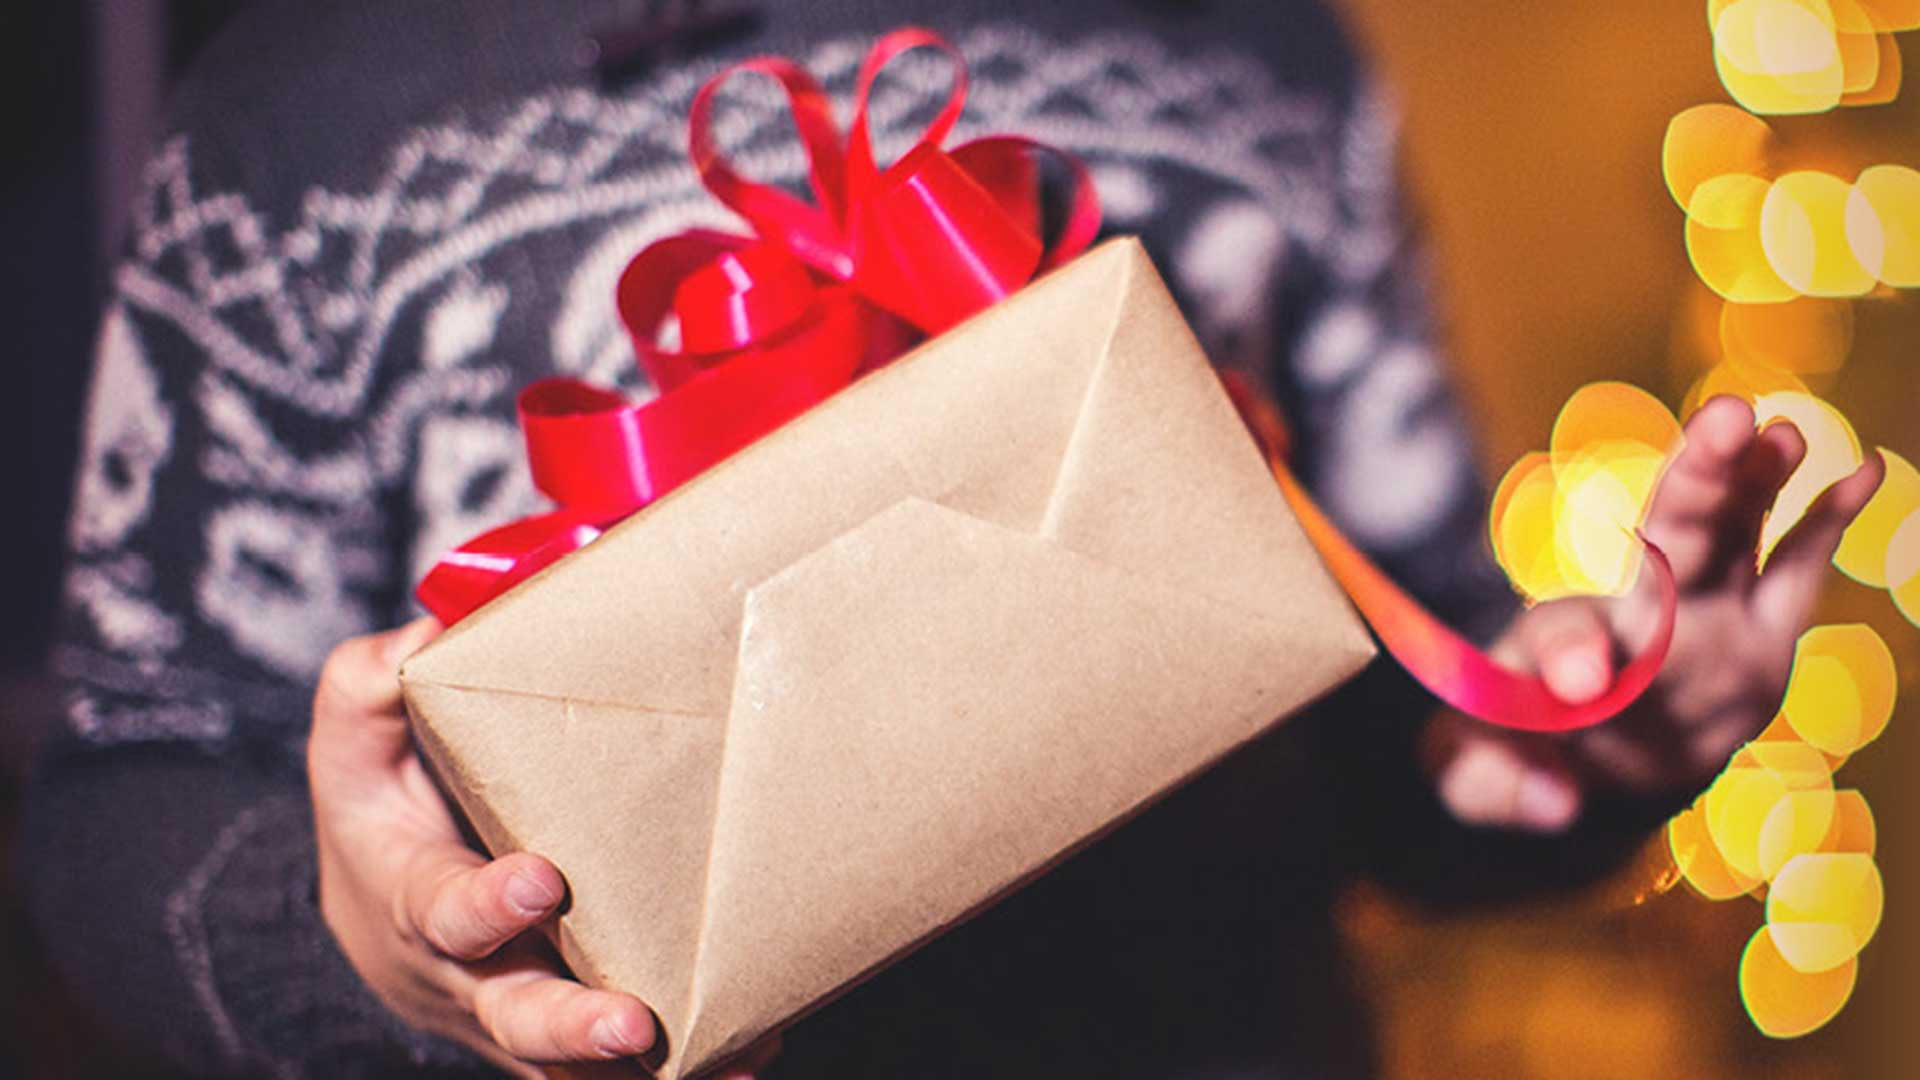 a man carries a gift wrapped with ribbon during the holidays